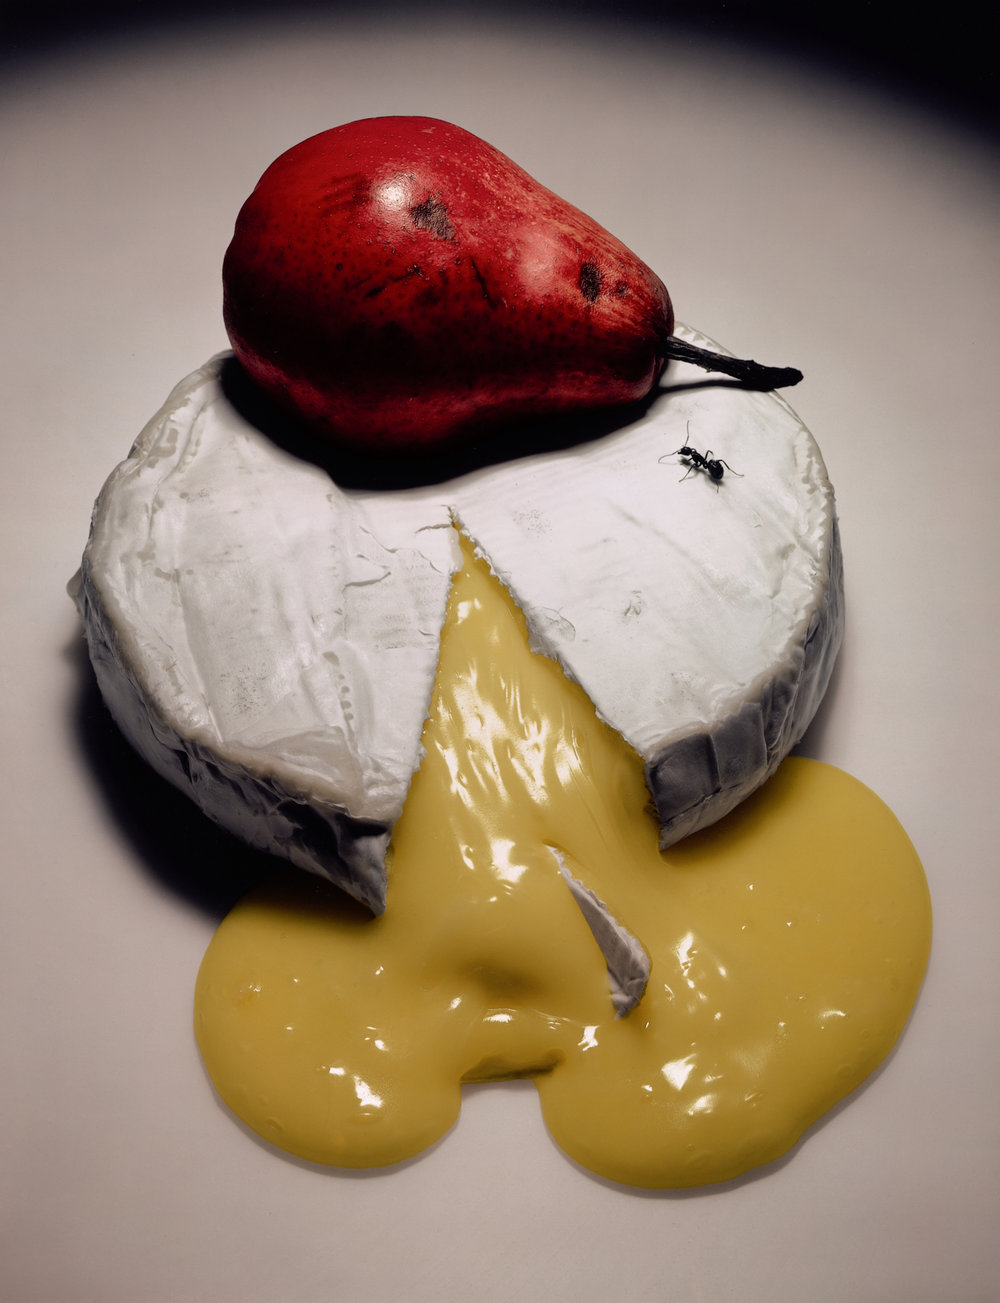 Ripe Cheese , New York, 1992 Dye transfer print © Condé Nast